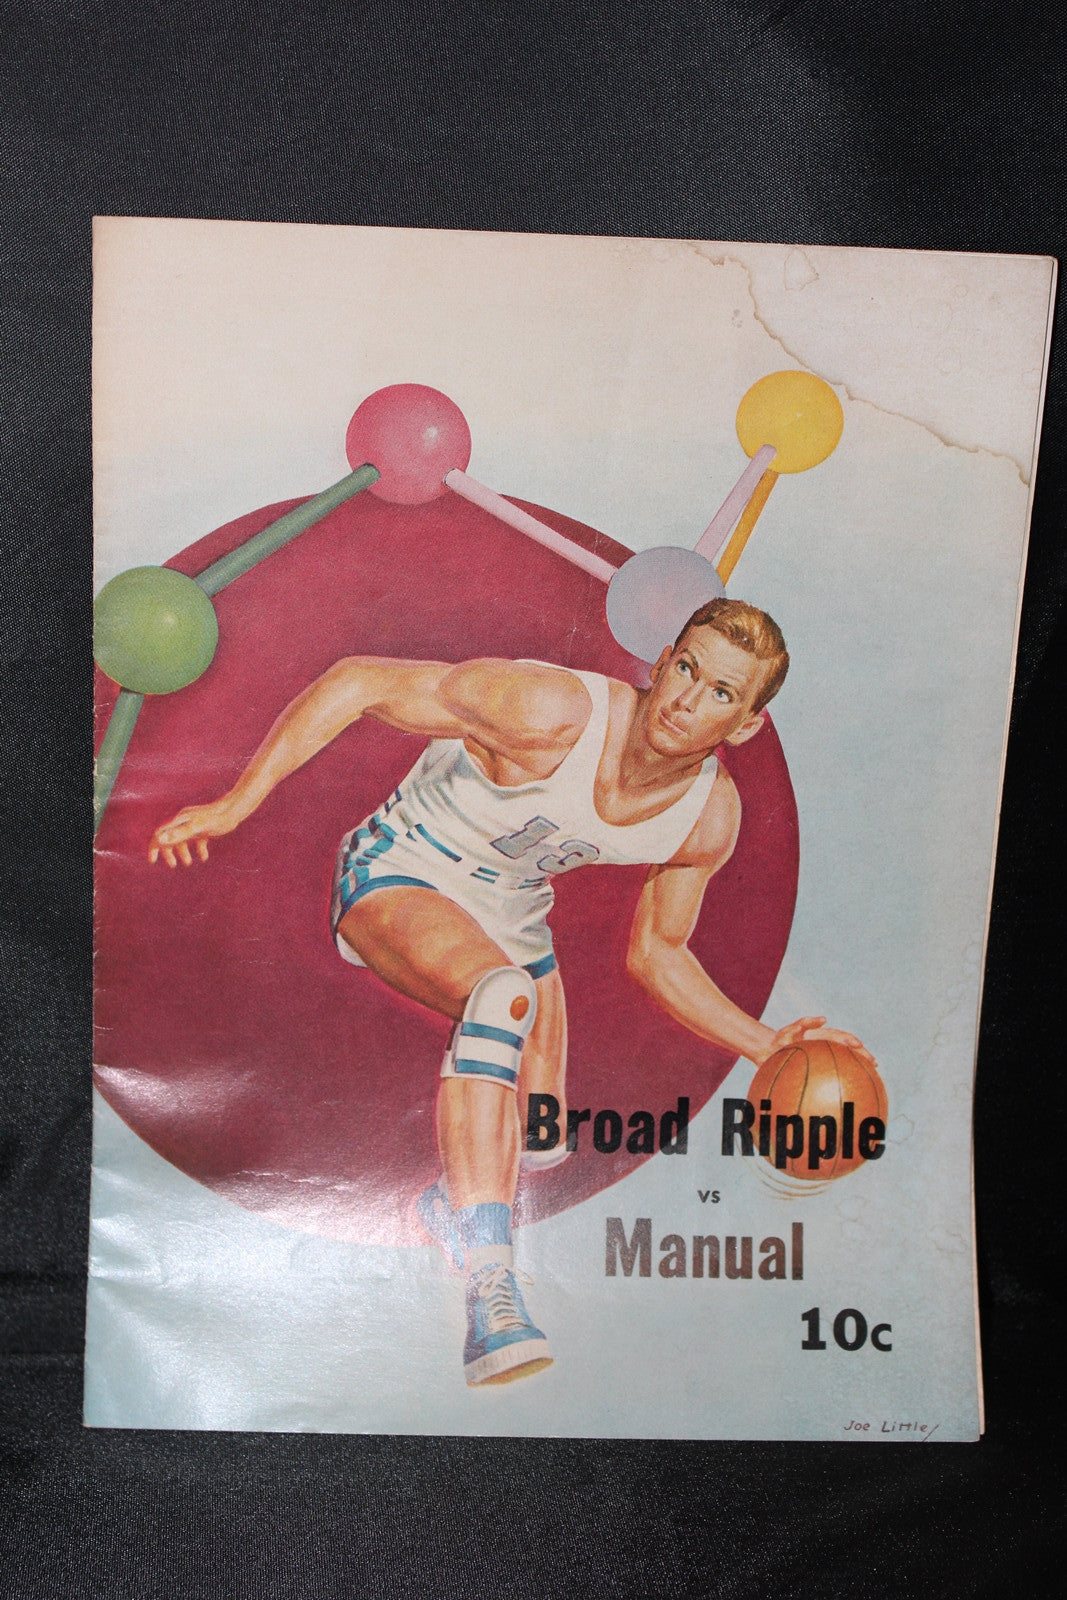 1967 Broad Ripple vs Manual Indiana High School Basketball Program - Vintage Indy Sports